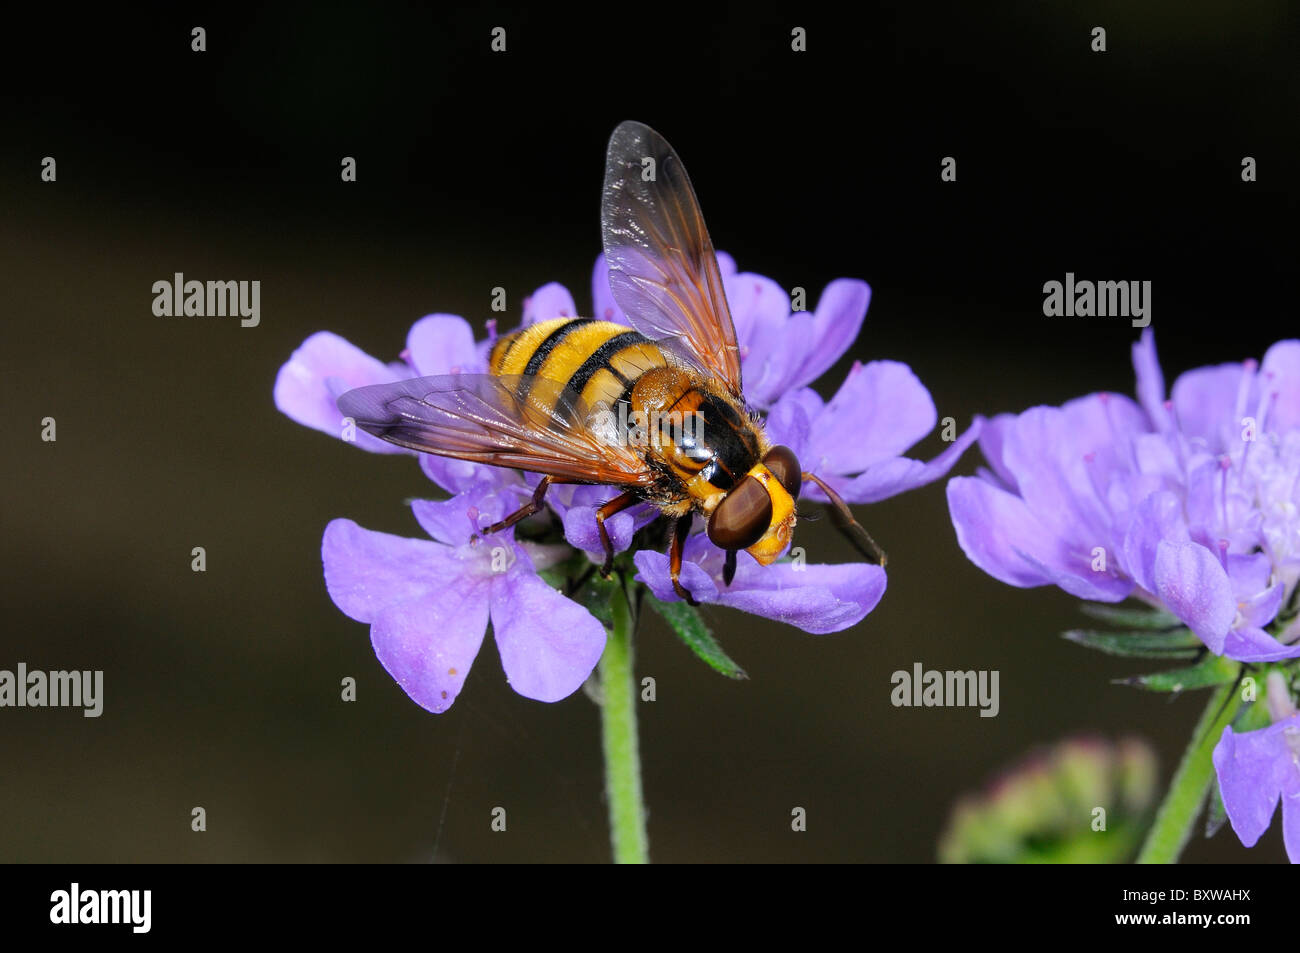 Hover-fly (Volucella species) feeding on scabious flower, Oxfordshire, UK. - Stock Image